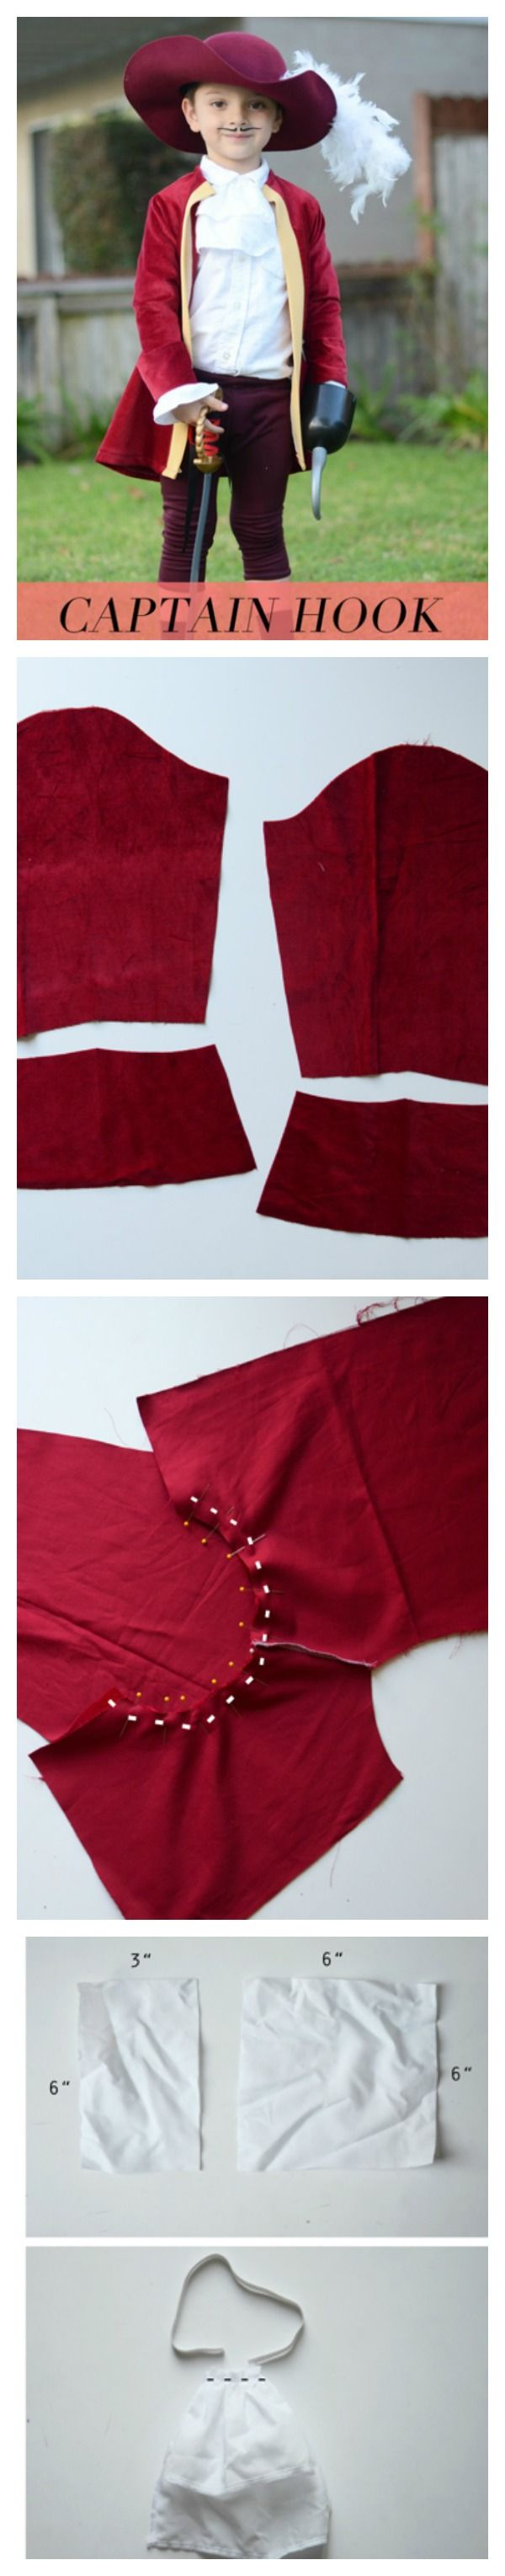 This is an adorable way to make a Captain Hook costume for your little one!